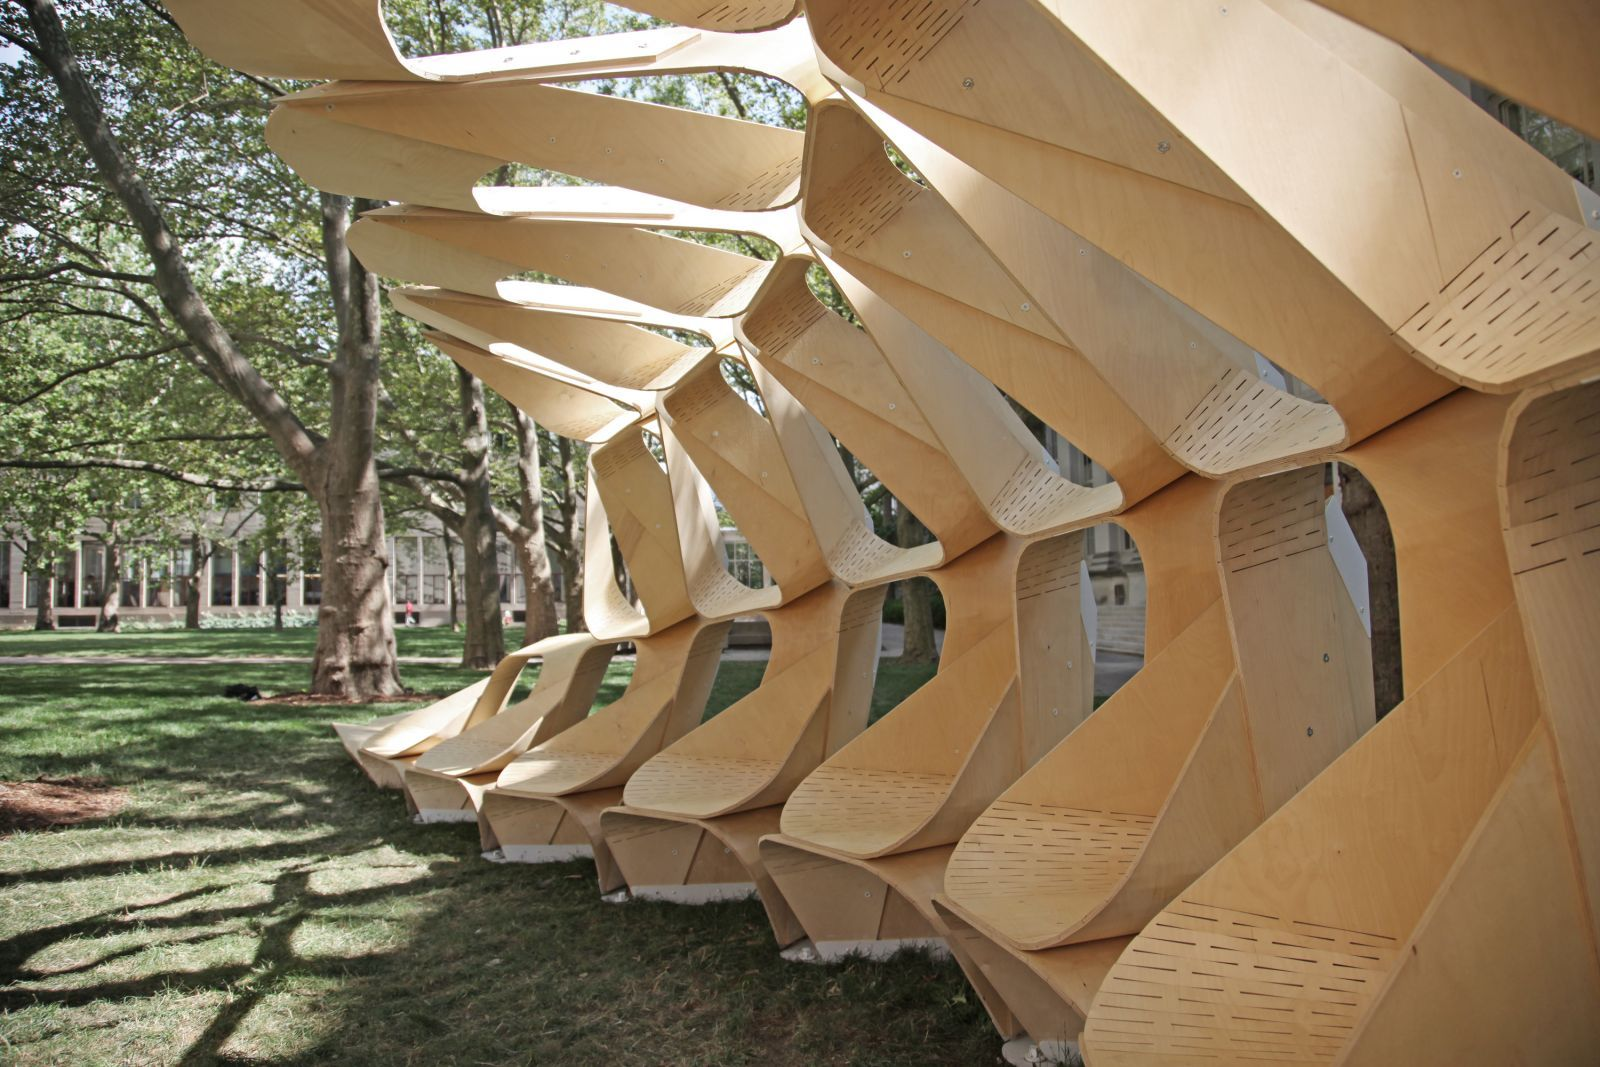 Kerf Pavilion by Brian Hoffer, Christopher Mackey, Tyler Crain, Dave Miranowski, architecture students at MIT